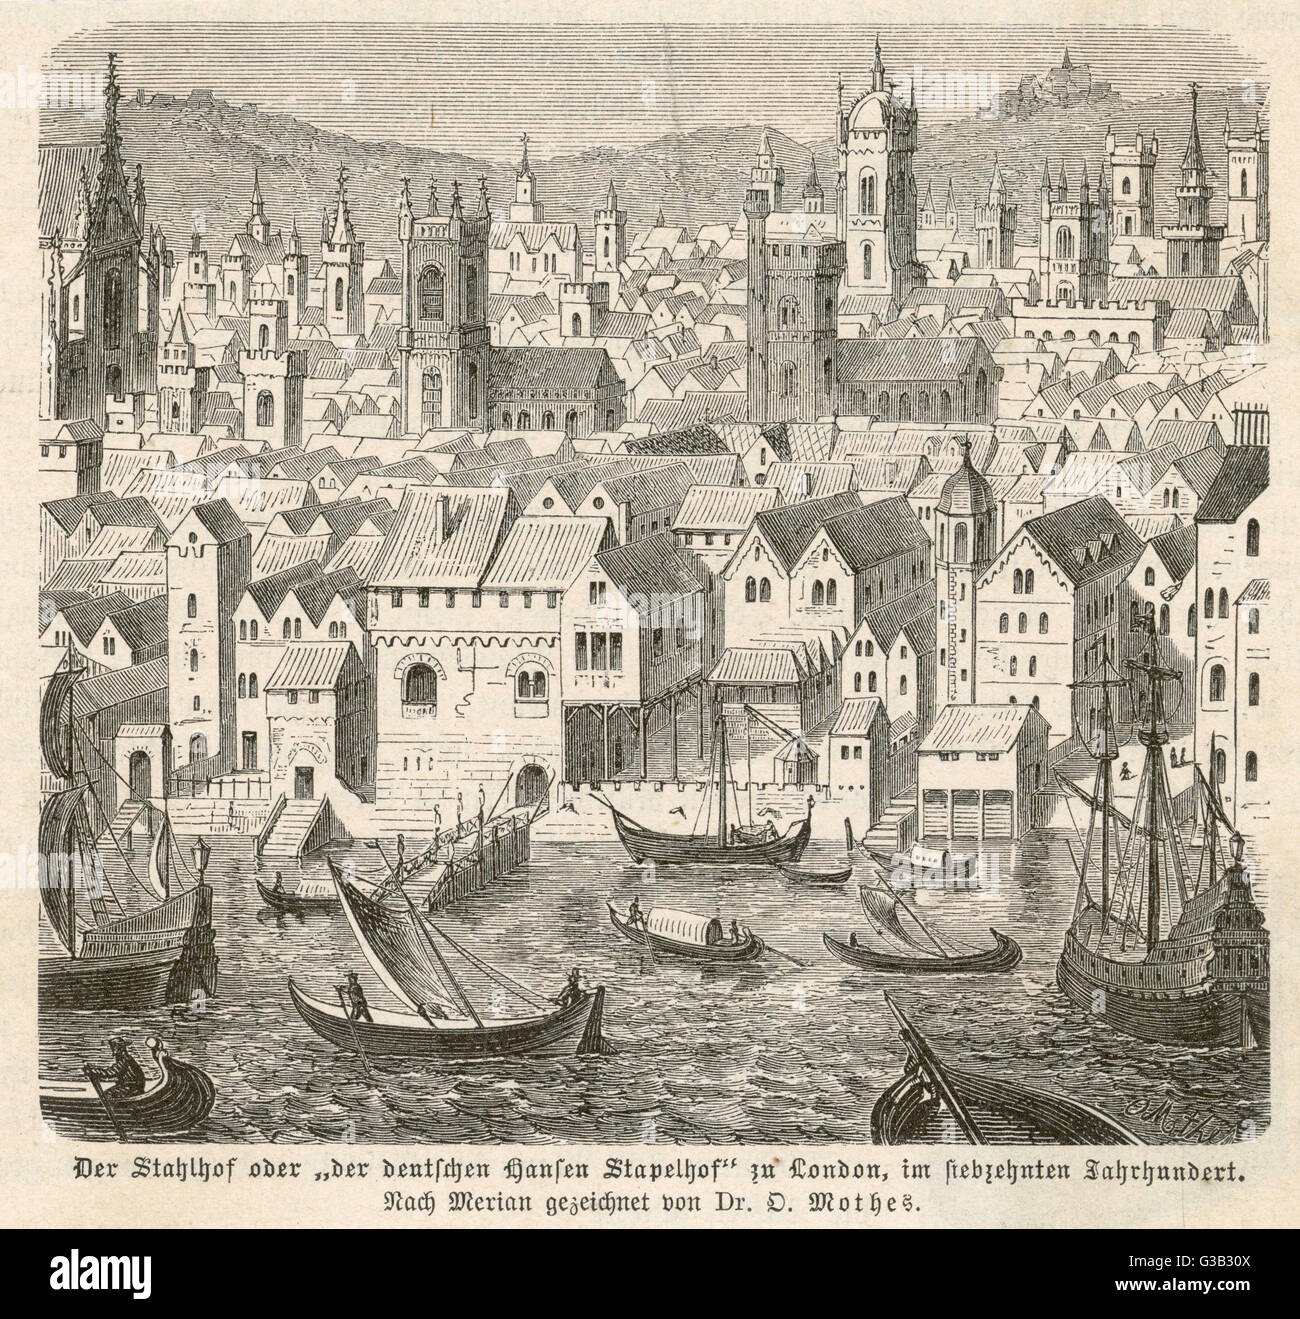 The Hanseatic League's depot  in London         Date: 16th century - Stock Image